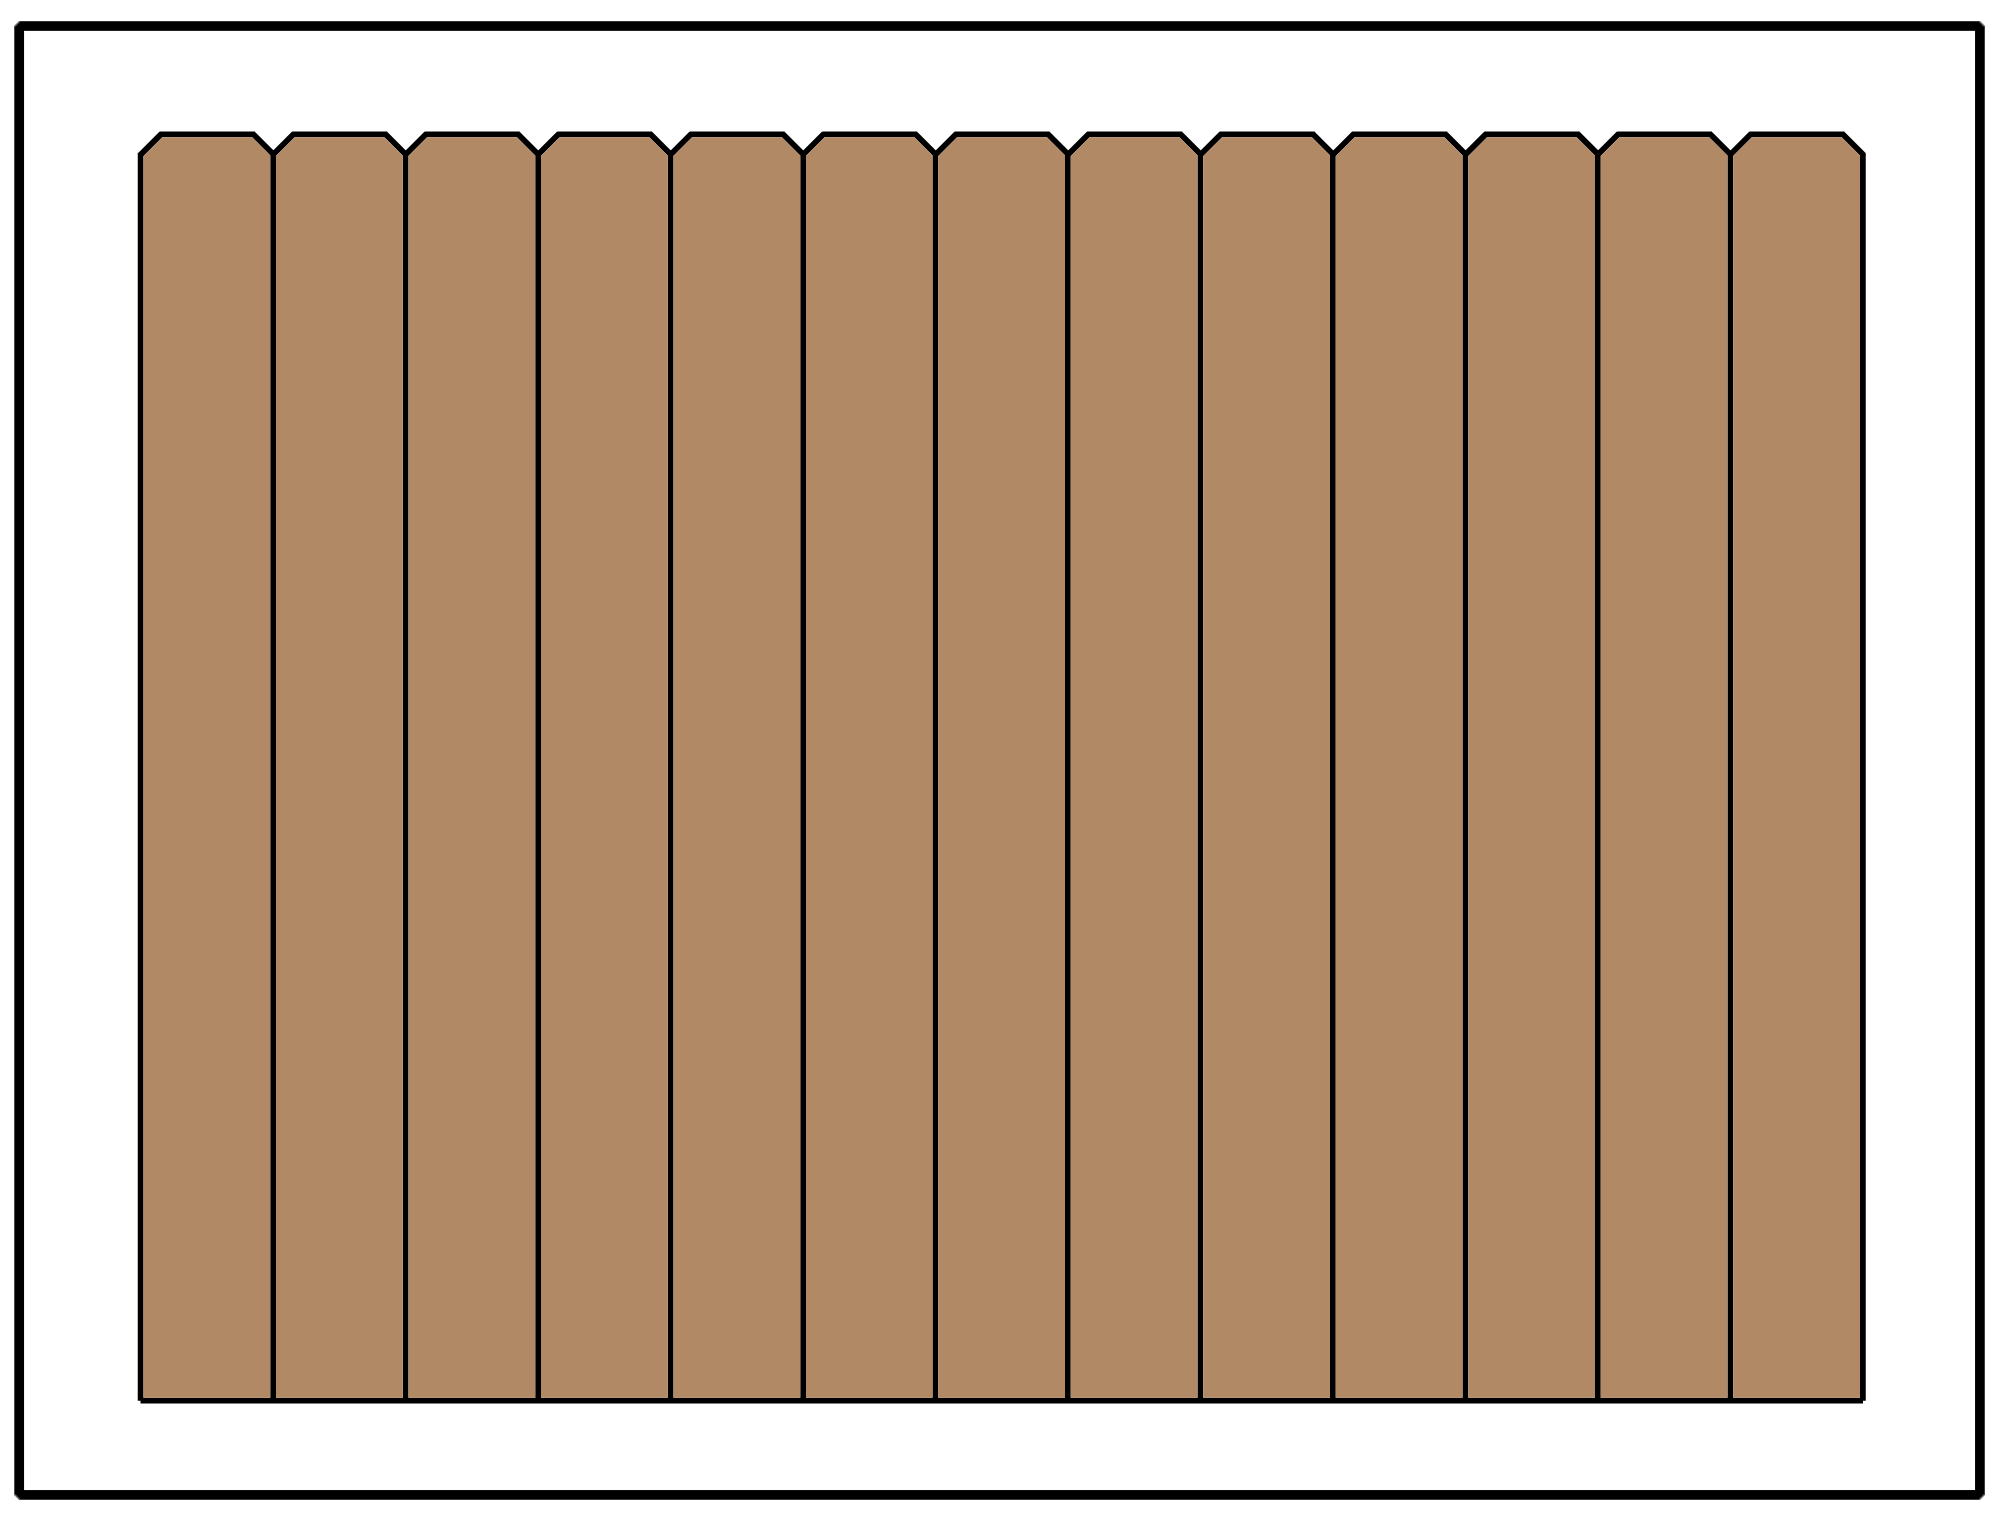 Privacy fence using a dog ear picket